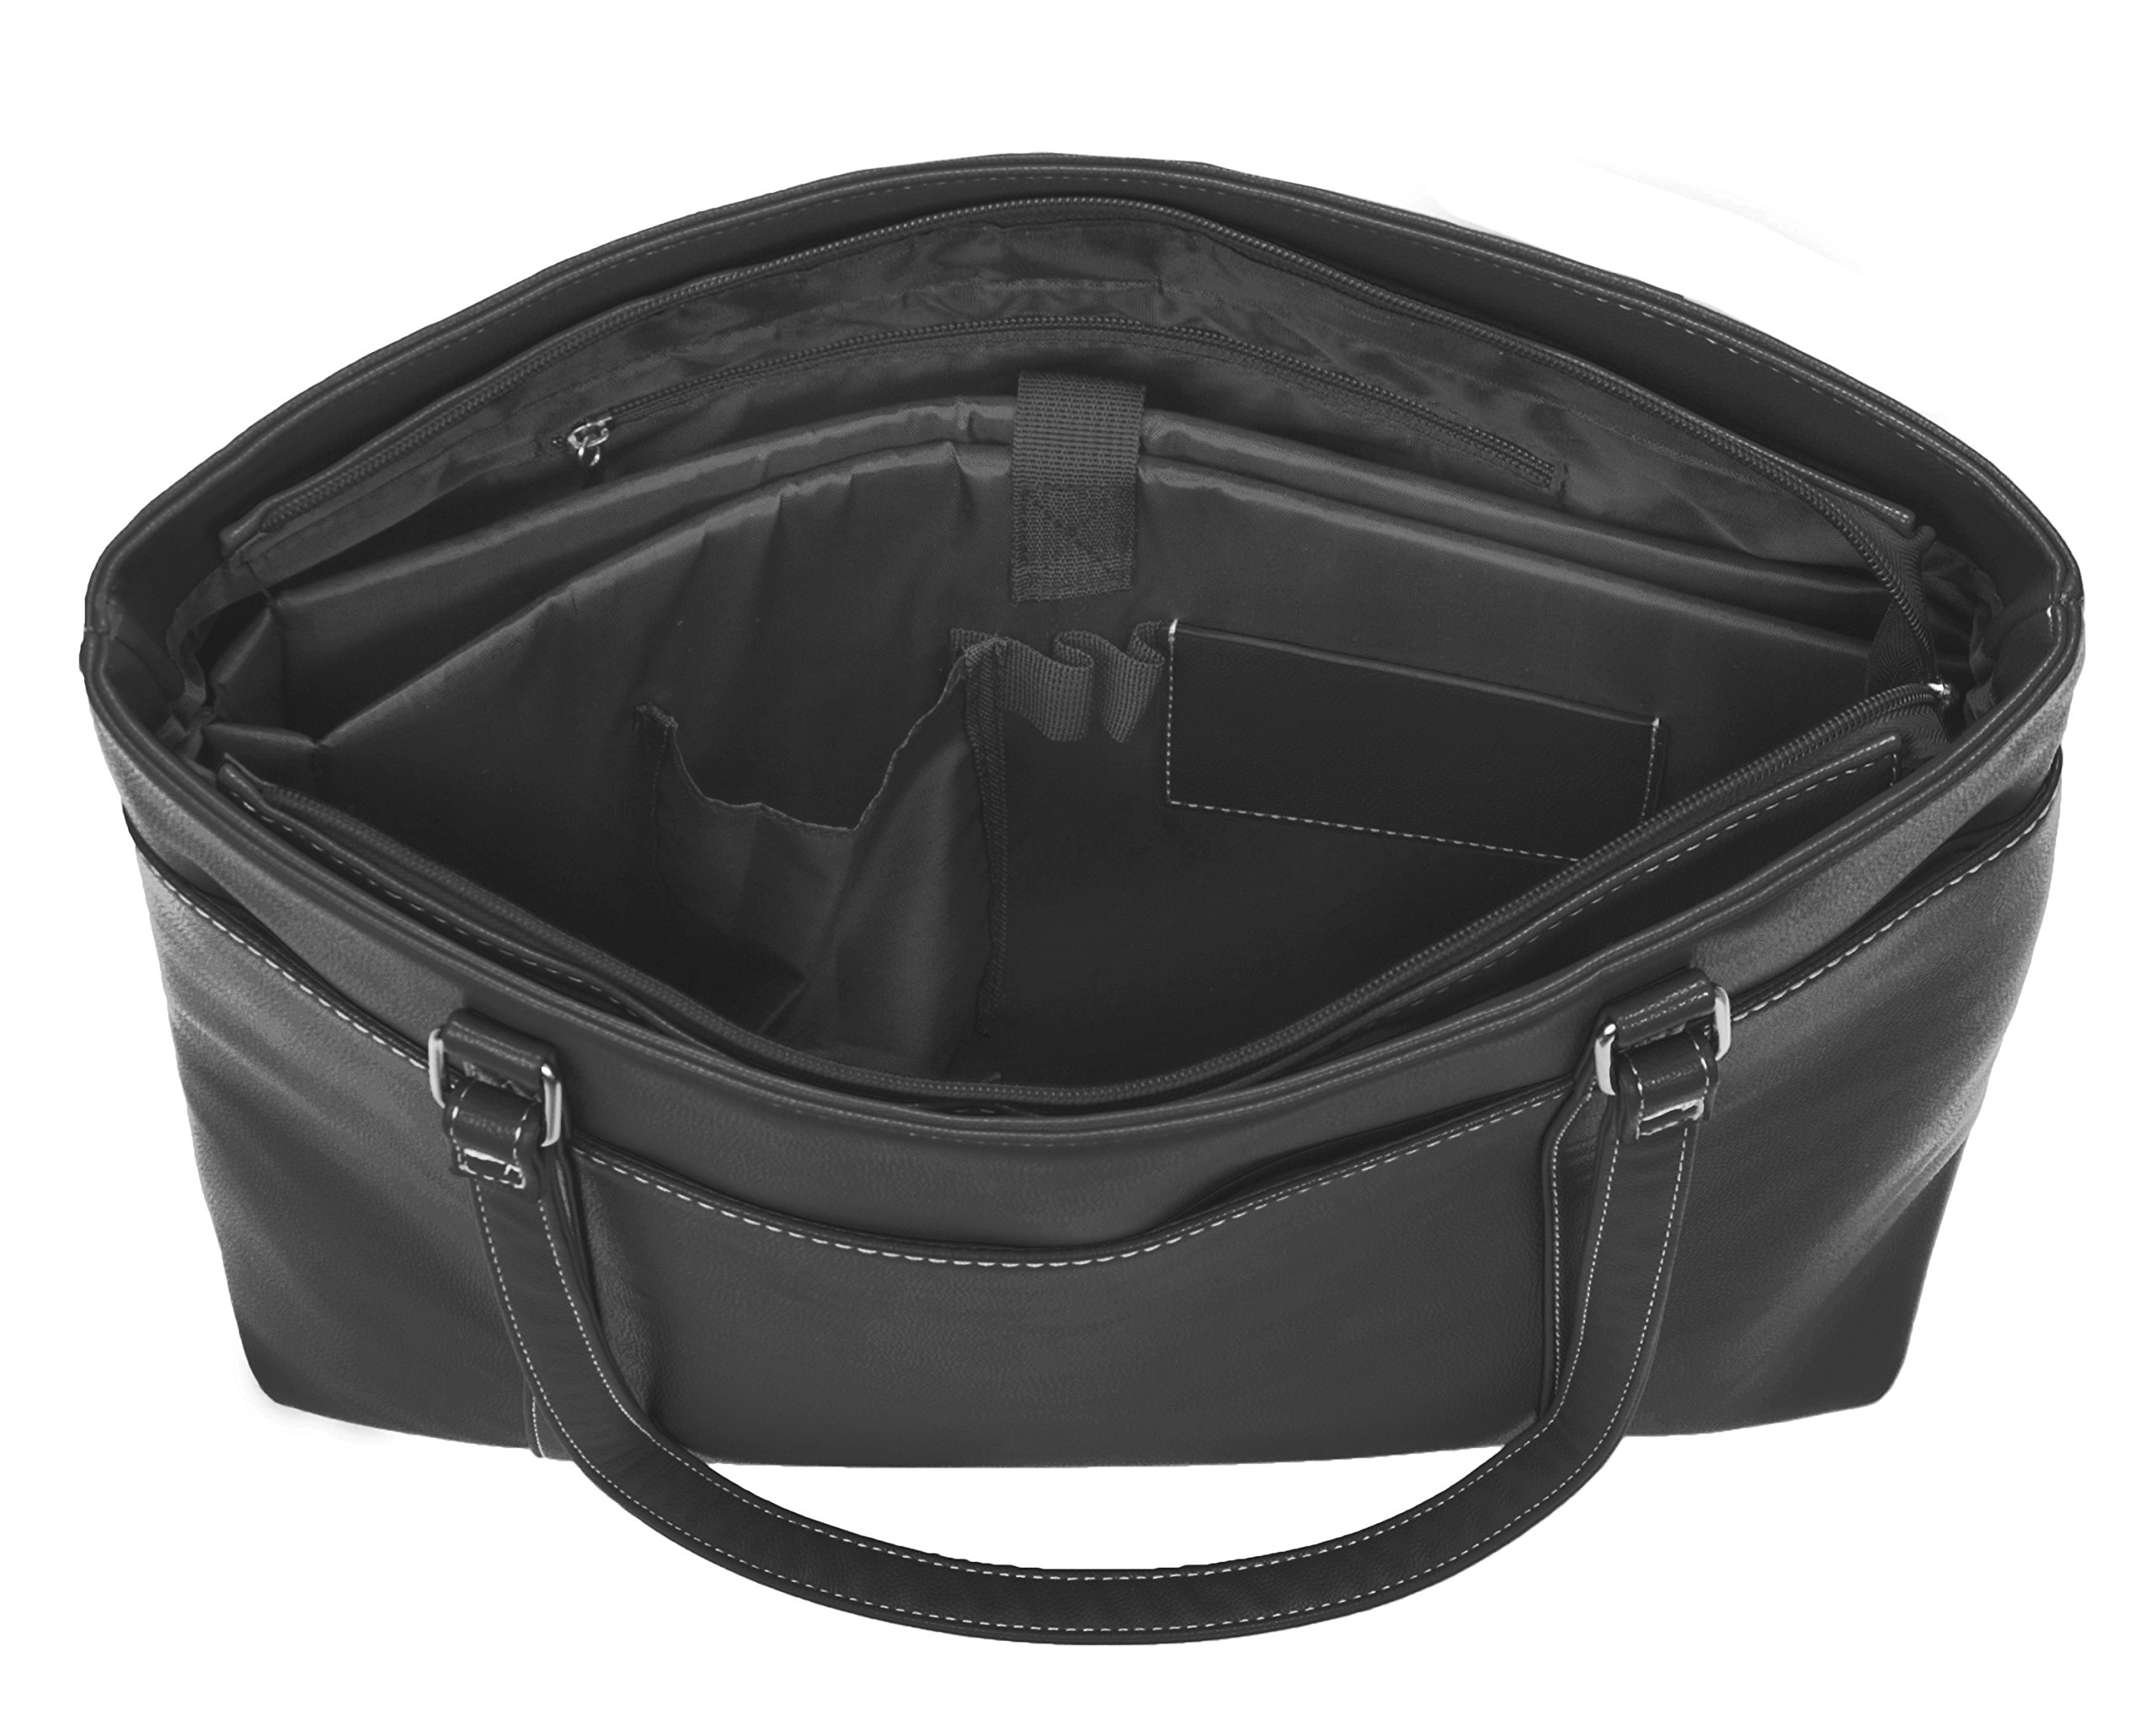 Overbrooke Classic Womens Tote Bag for Laptops  up to 15.6 Inches, Black by Overbrooke (Image #4)